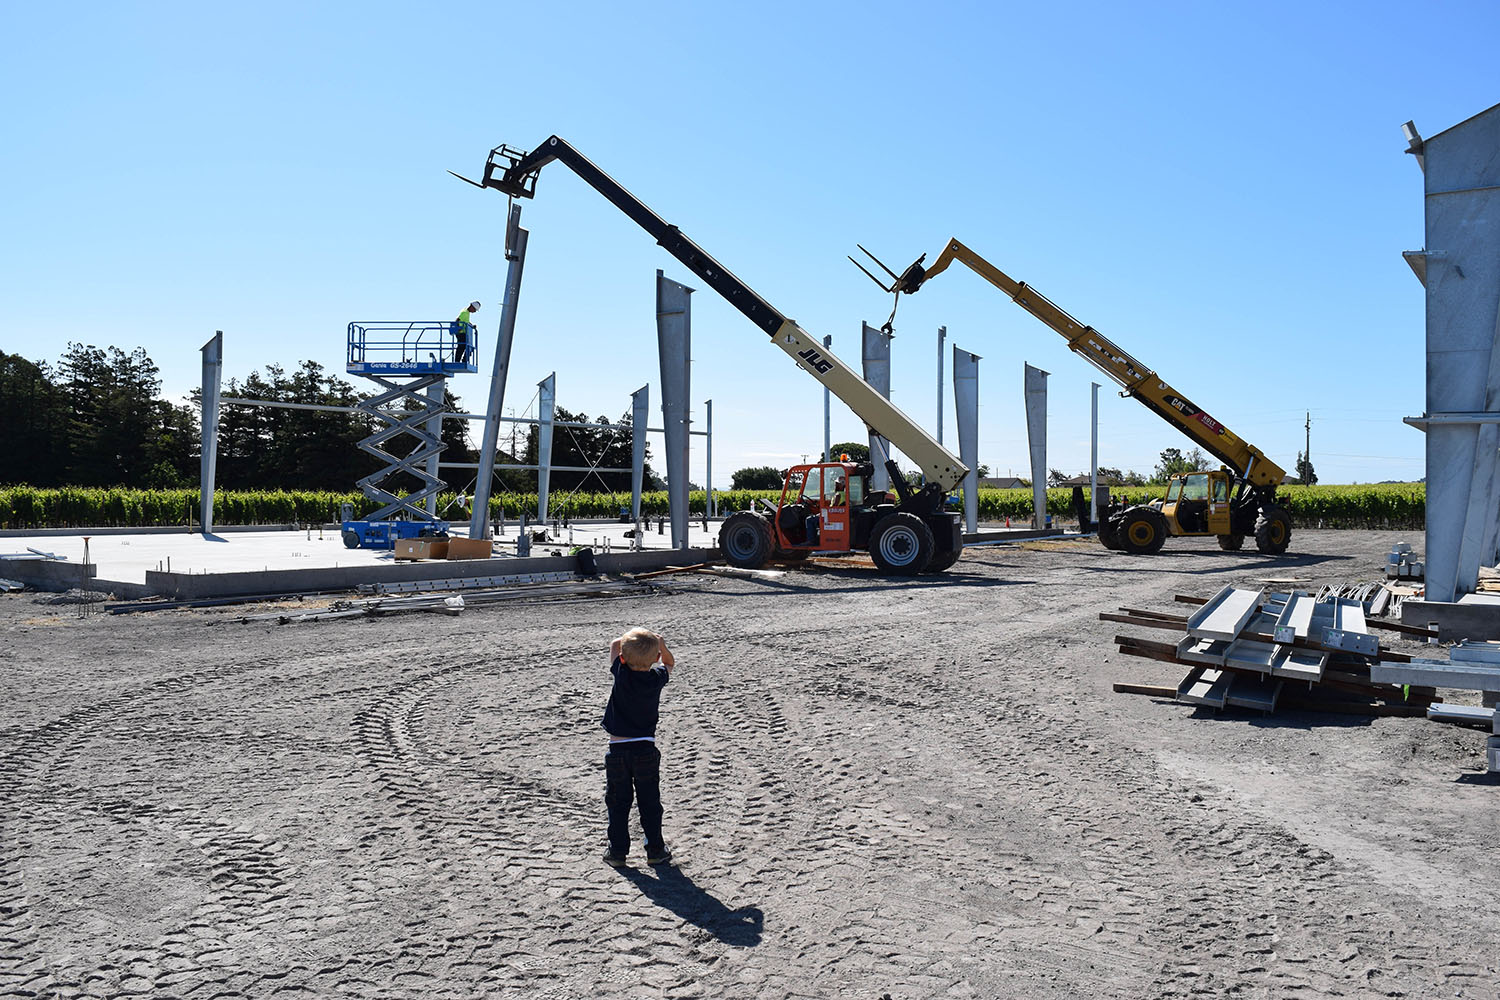 Liam Roche, son of Brendan Roche, looks on in awe of the big machinery used to set the framing in place